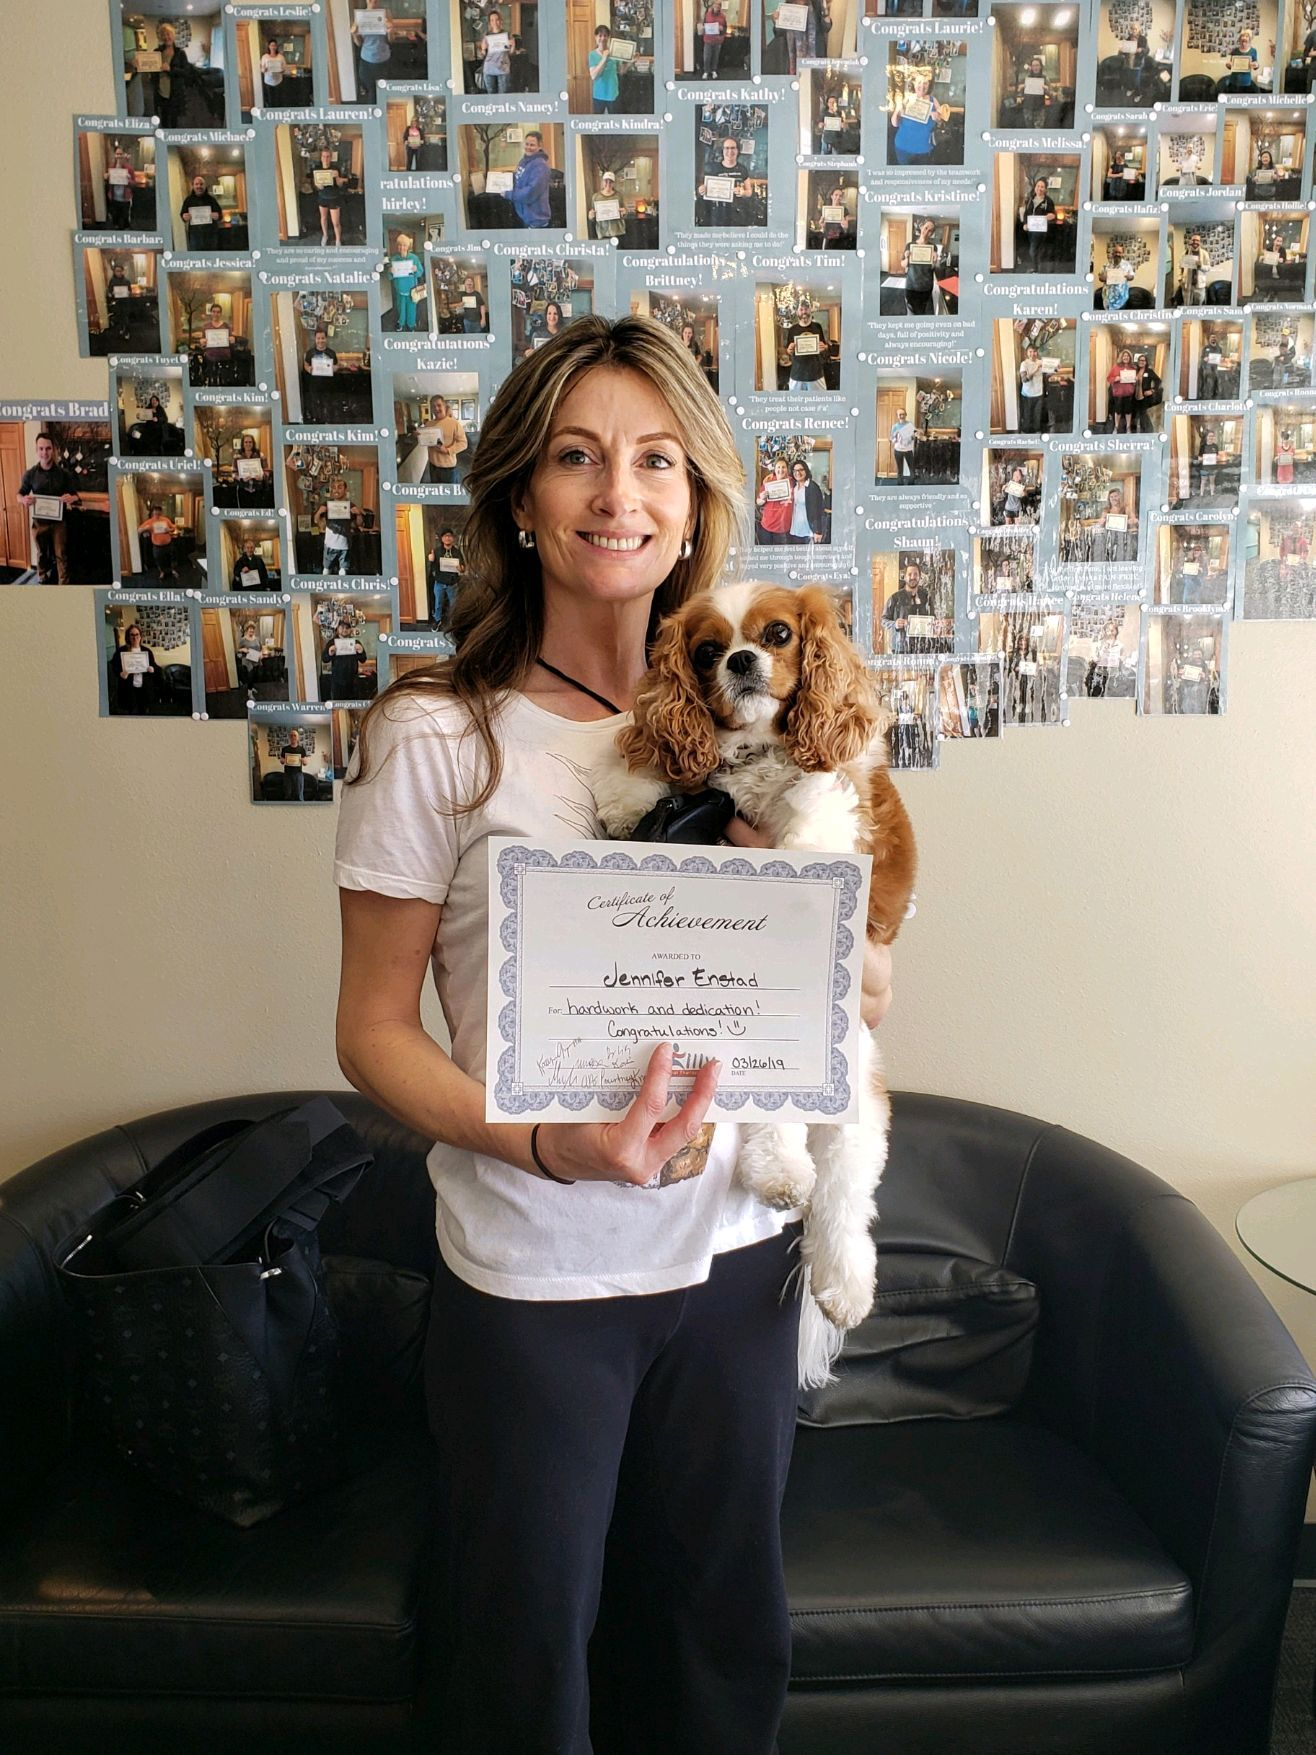 Another happy patient alongside an even happier puppy